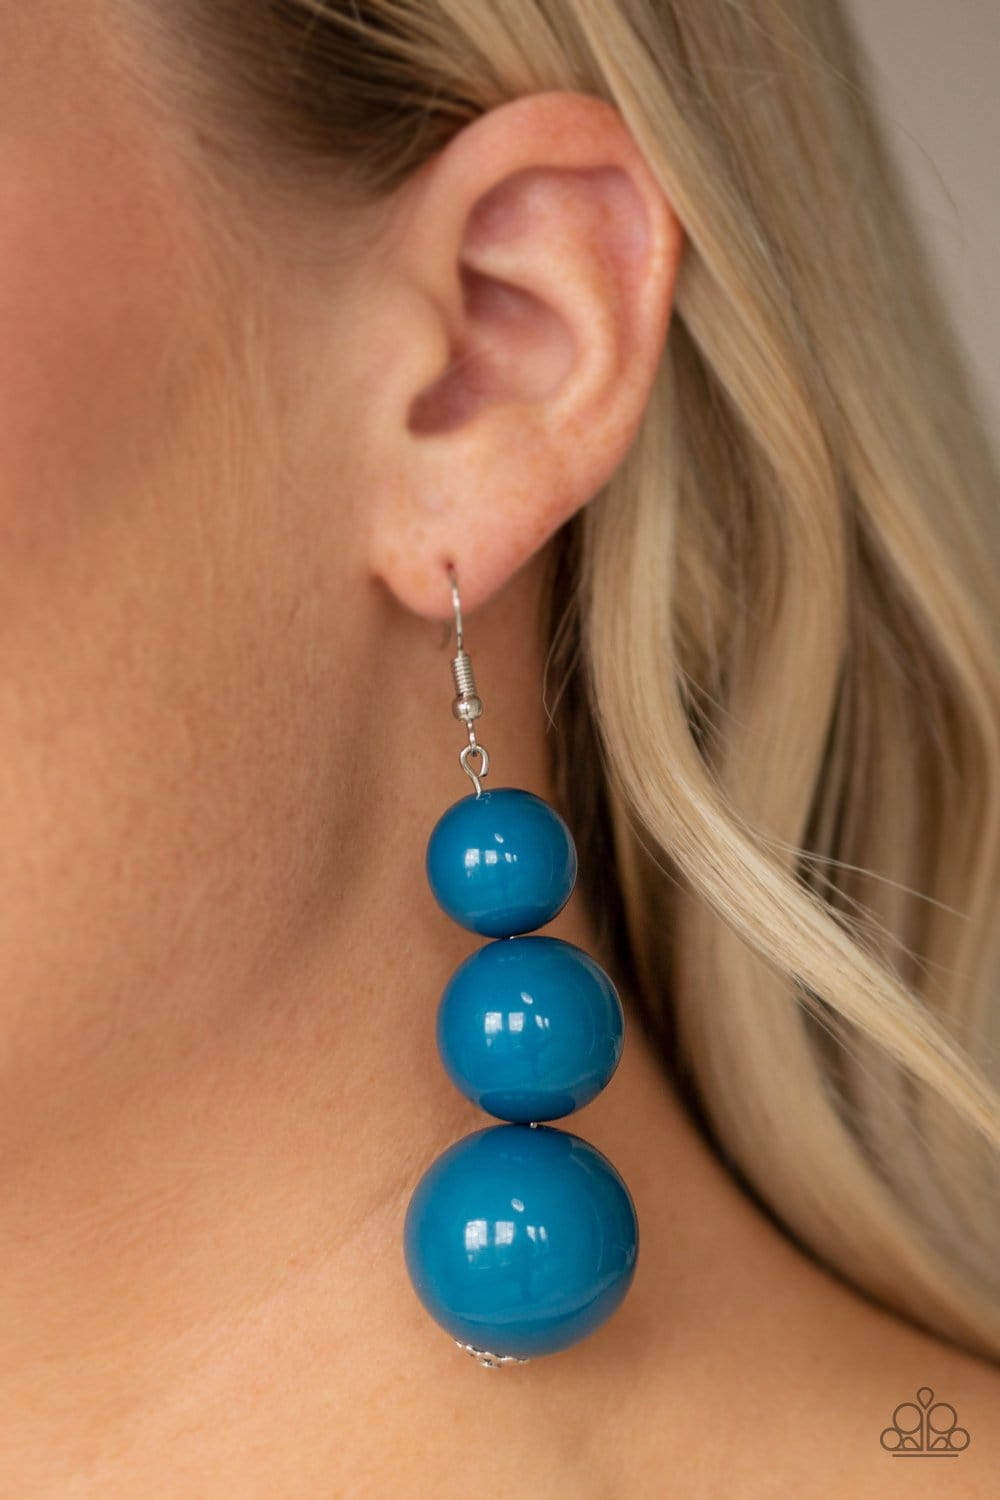 Material World - Blue: Paparazzi Accessories - Jewels N' Thingz Boutique